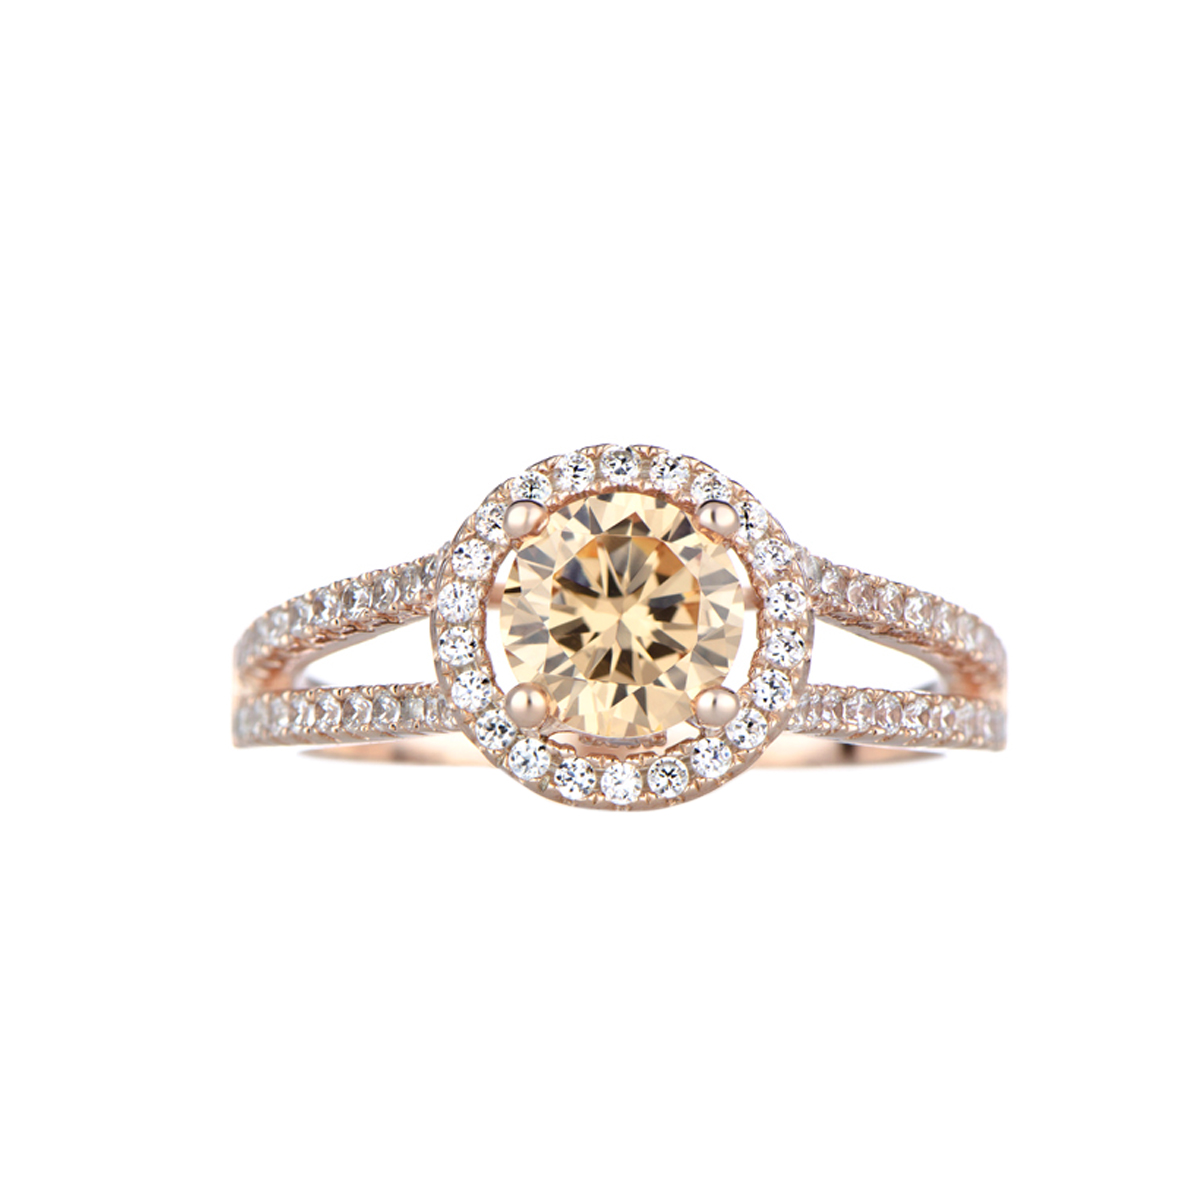 Ariane's Rose Gold Engagement Ring  Champagne Cz With Halo Roll Off Image  To Close Zoom Window